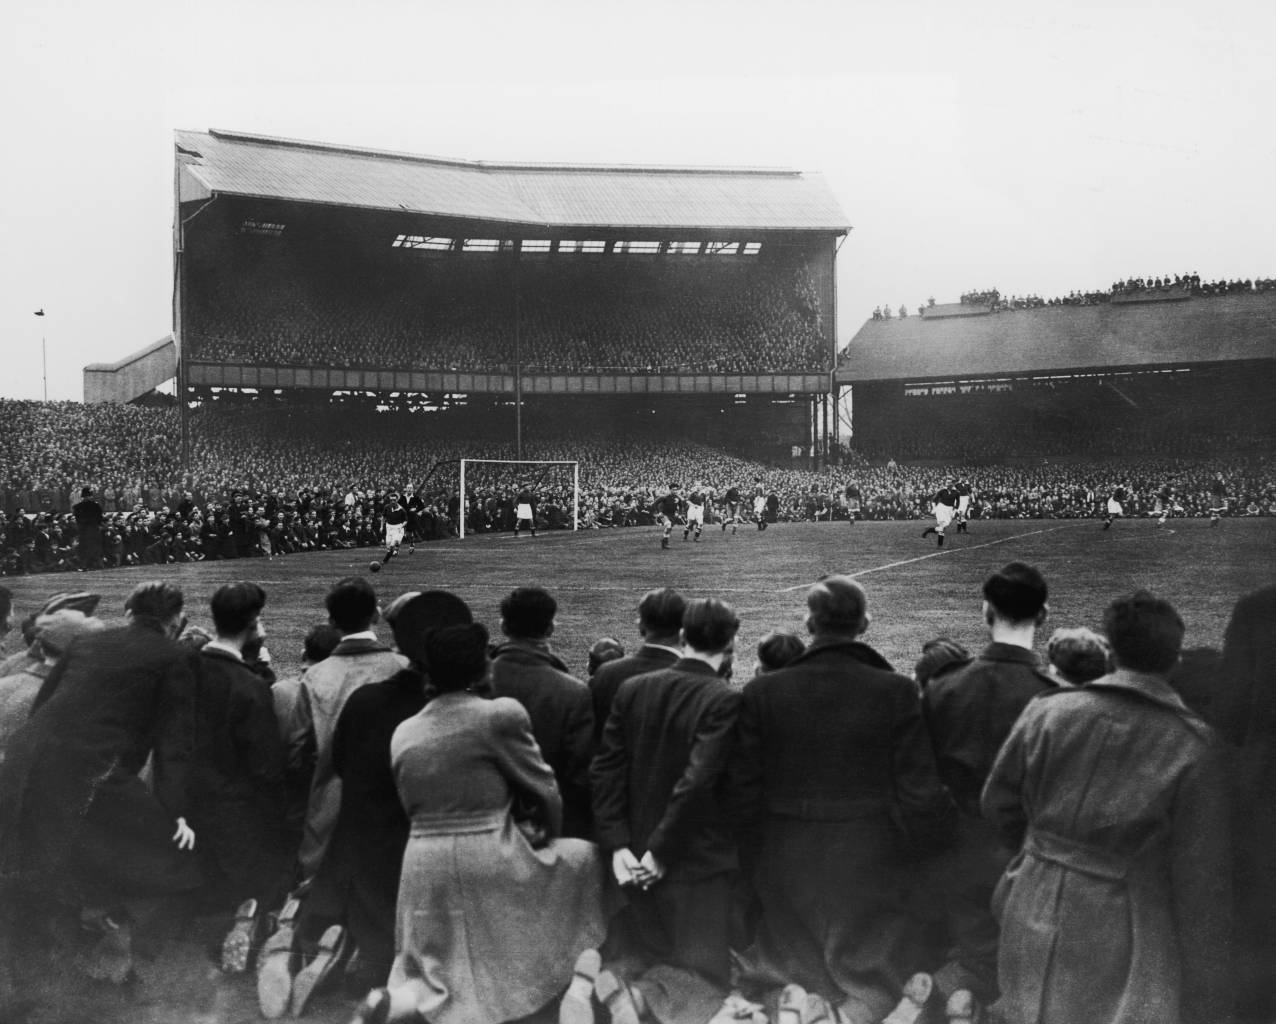 A crowd of around 82,000 watching Chelsea play Moscow Dynamo at Stamford Bridge in the first game of the Russians' tour of Britain. (Photo by Central Press/Getty Images)